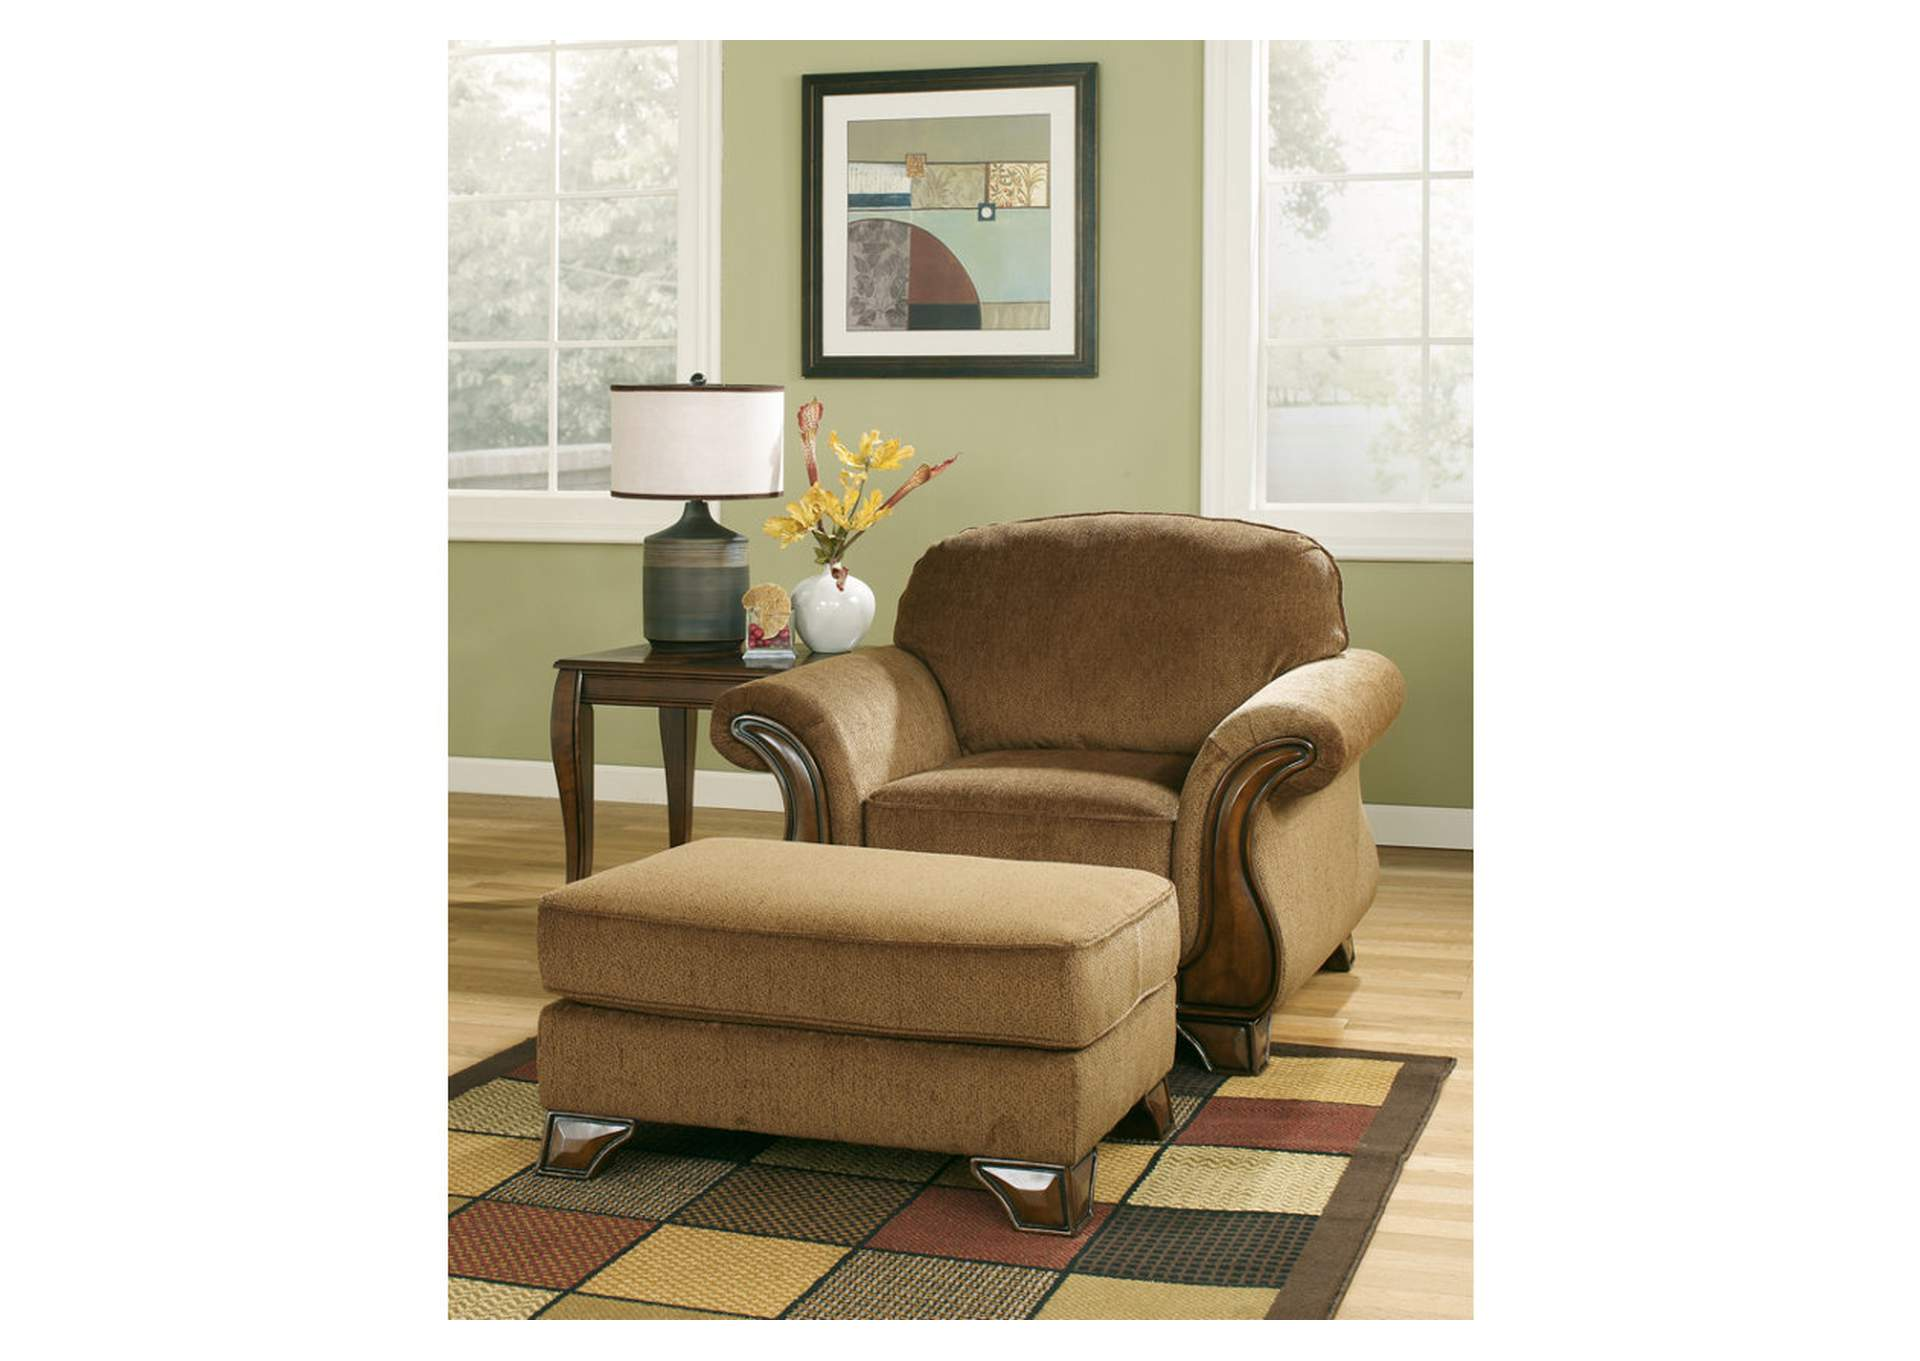 Montgomery Mocha Chair,Signature Design By Ashley